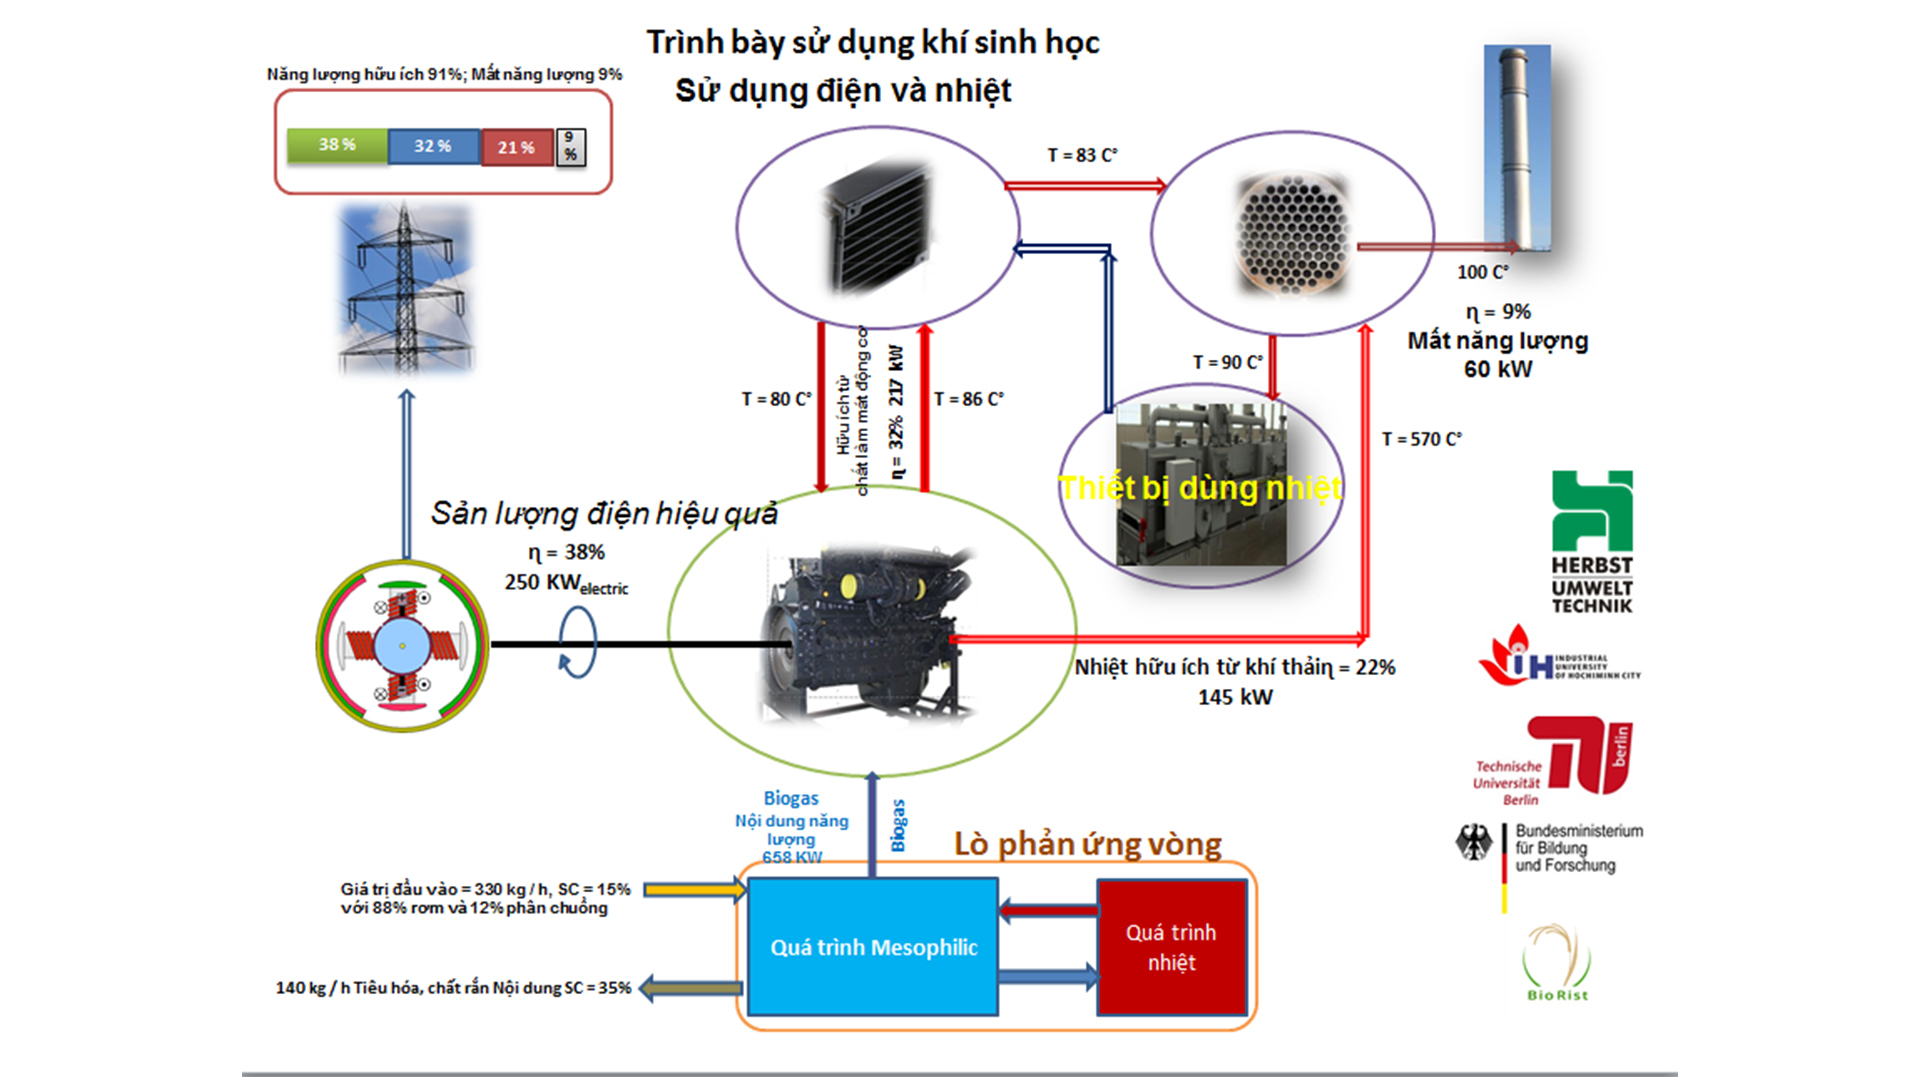 su-dung-khi-sinh-hoc-su-dung-dien-va-nhiet-tu-cong-nghe-biogas